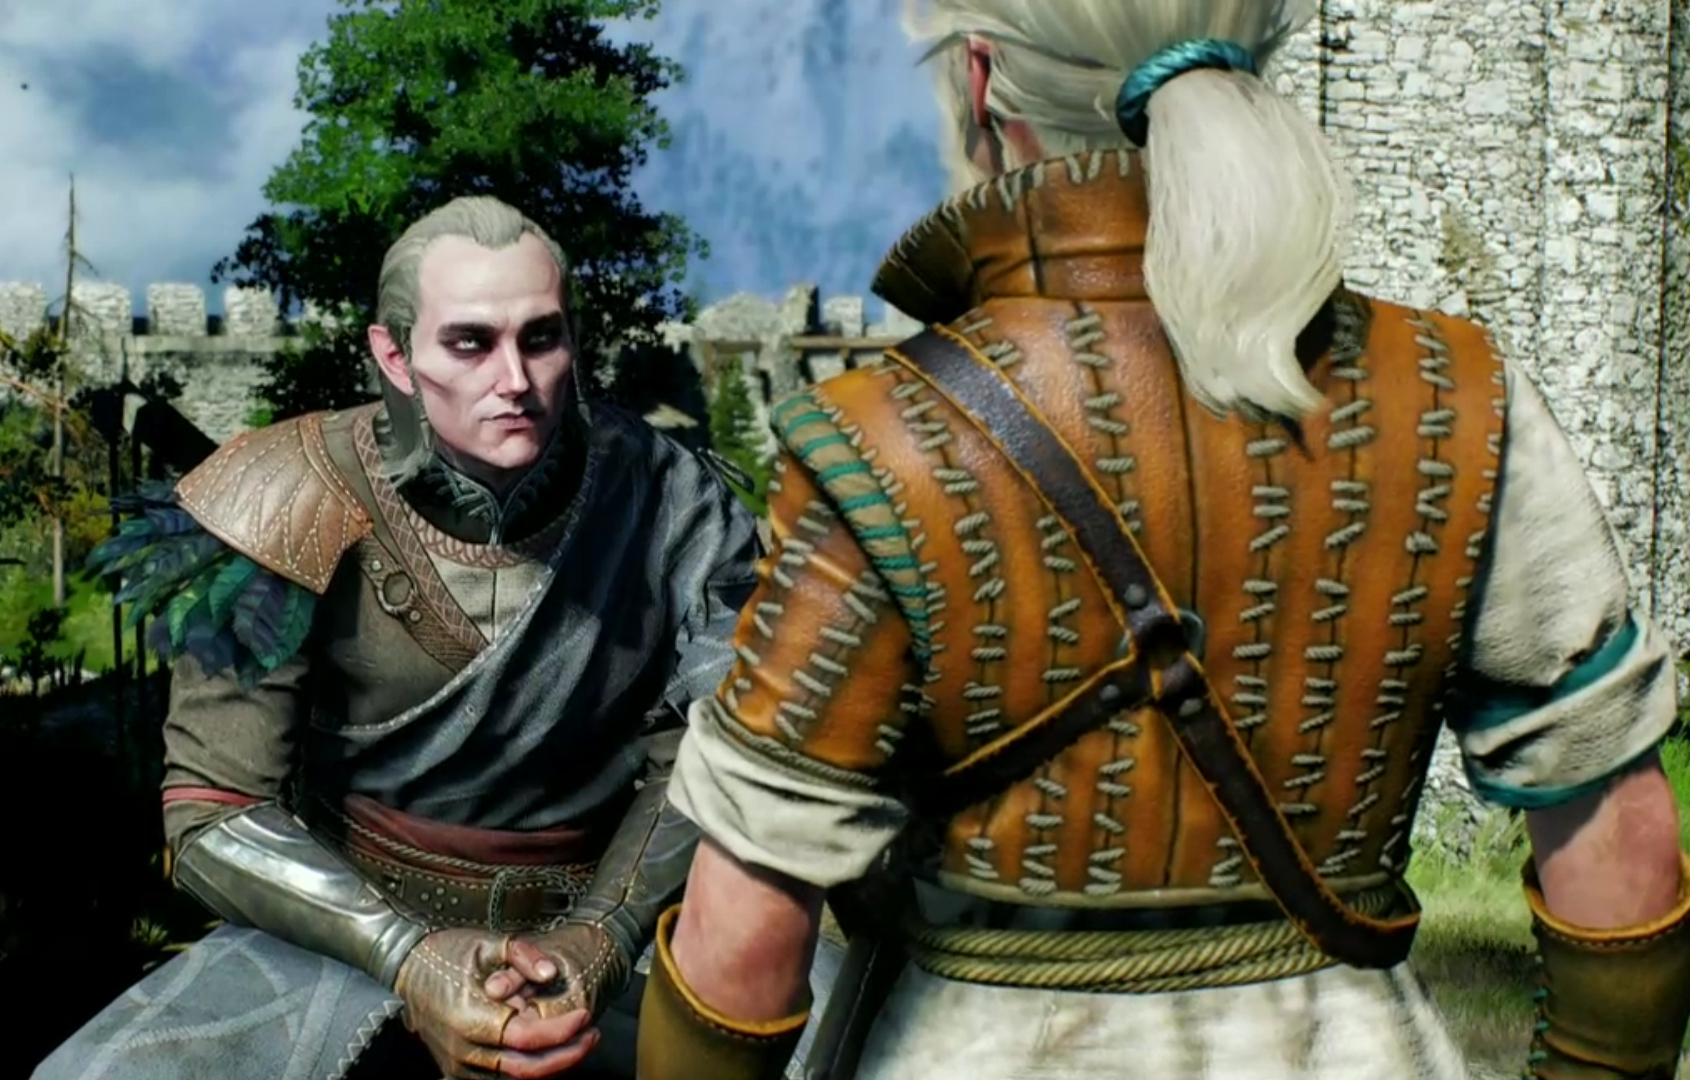 Avallac'h with 12 year old Ciri... the age she was when she was in those 22 sex scenes with Avallac'h, King Auberon, and Eredin, in Chapter 5 of the novel Lady of the Lake